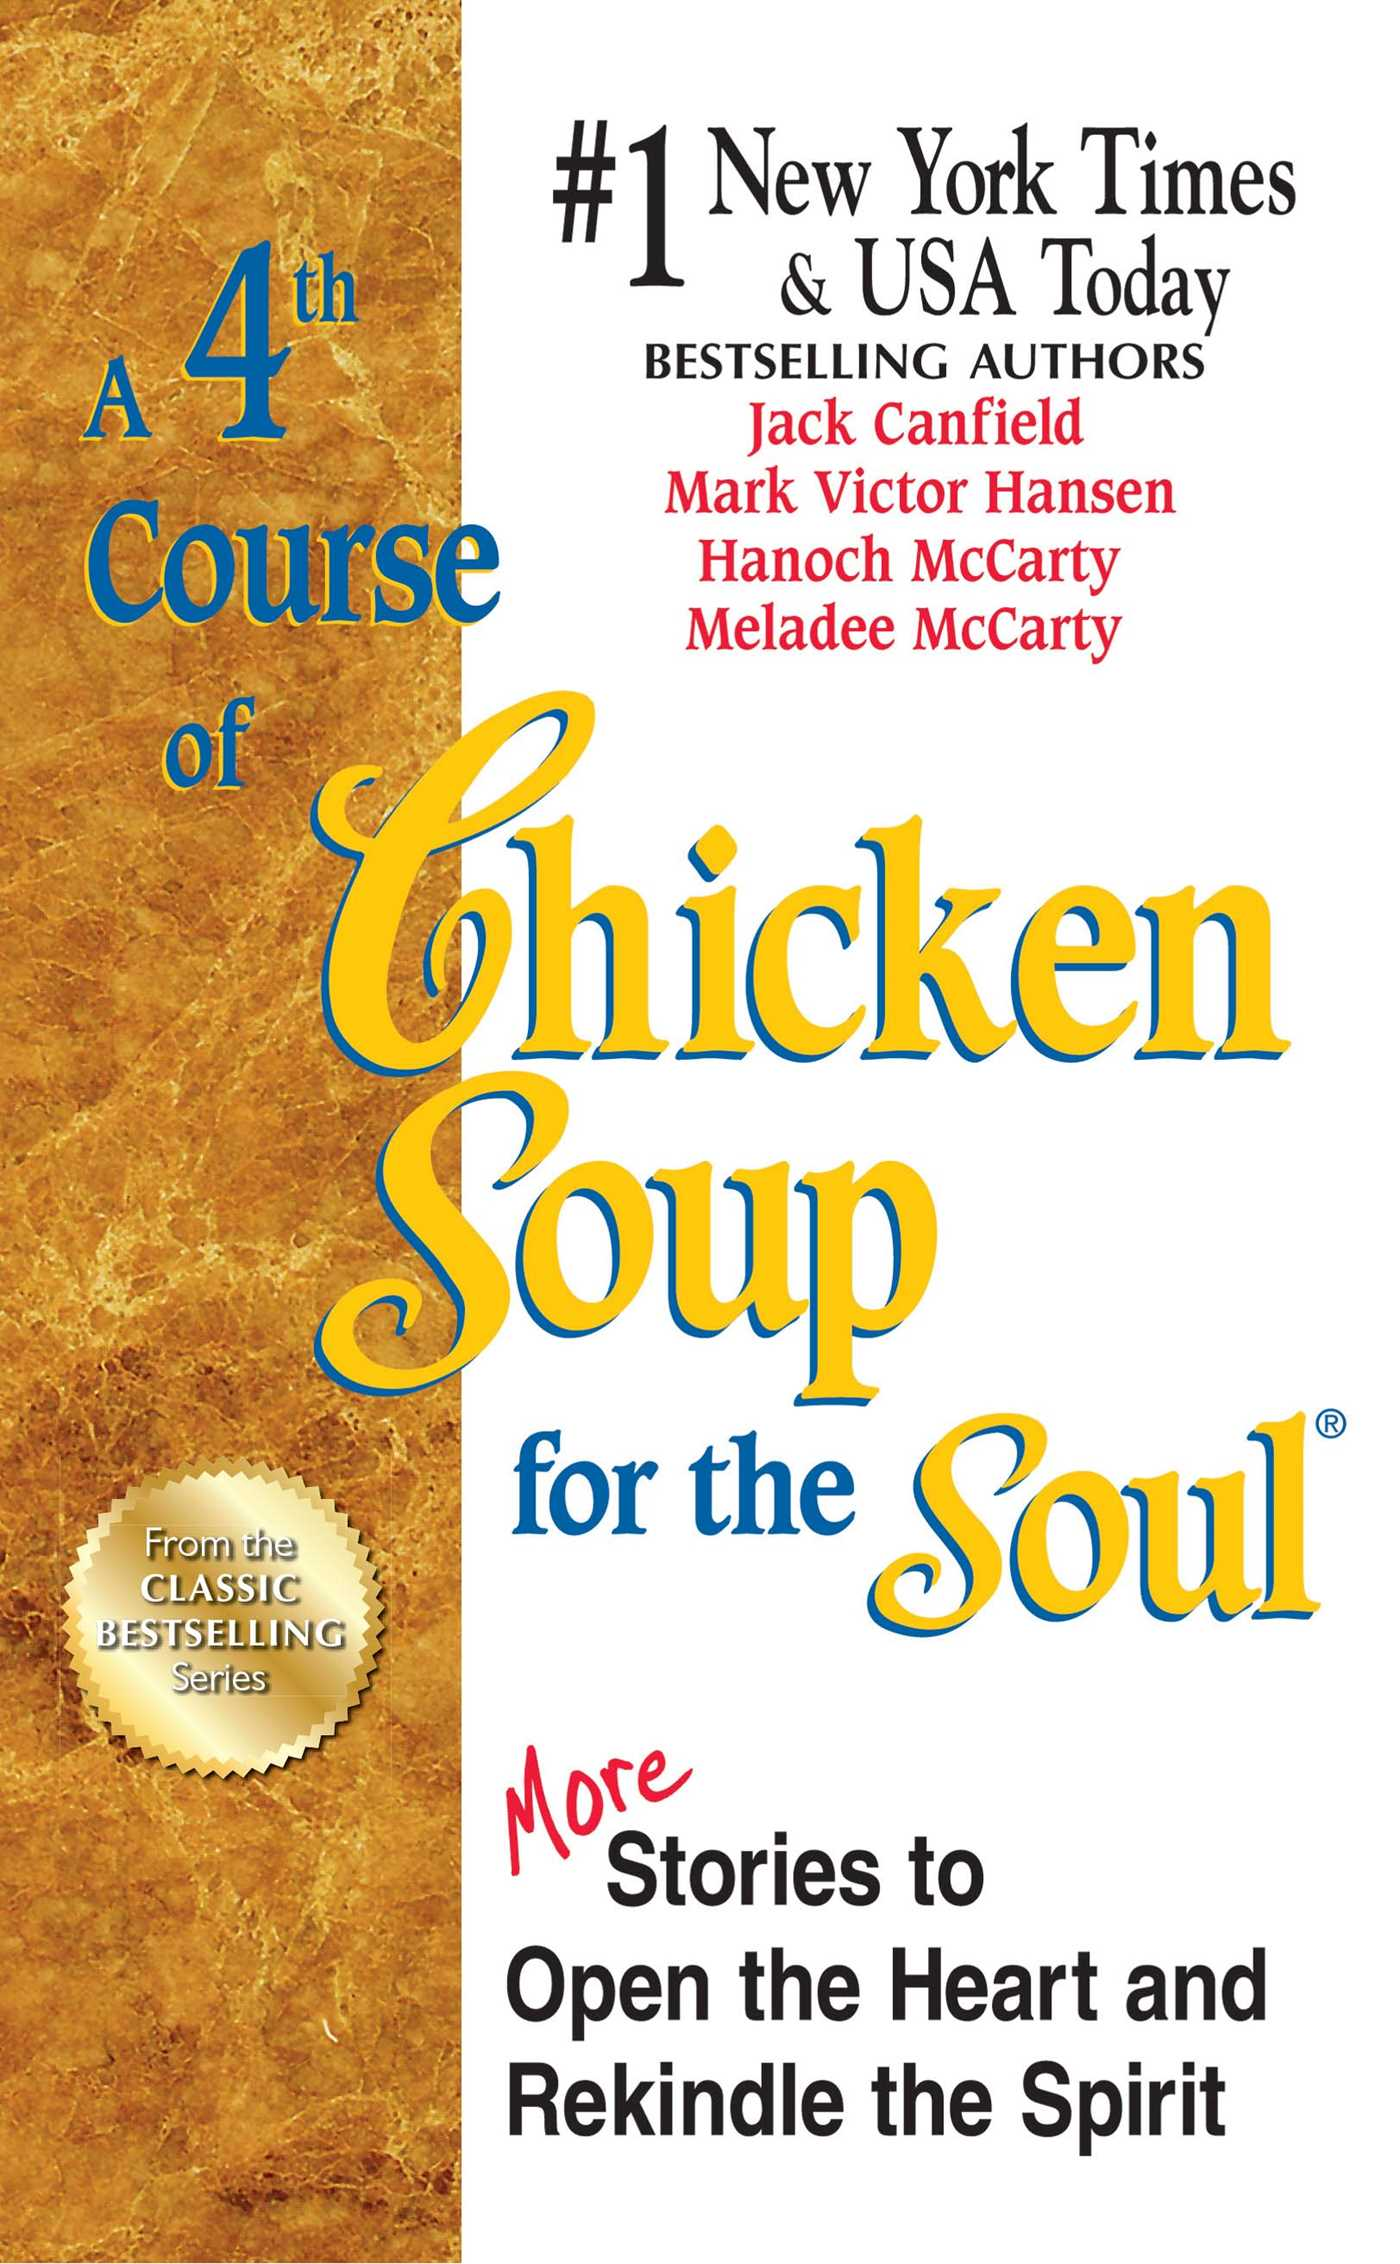 A 4th course of chicken soup for the soul 9781623610449 hr